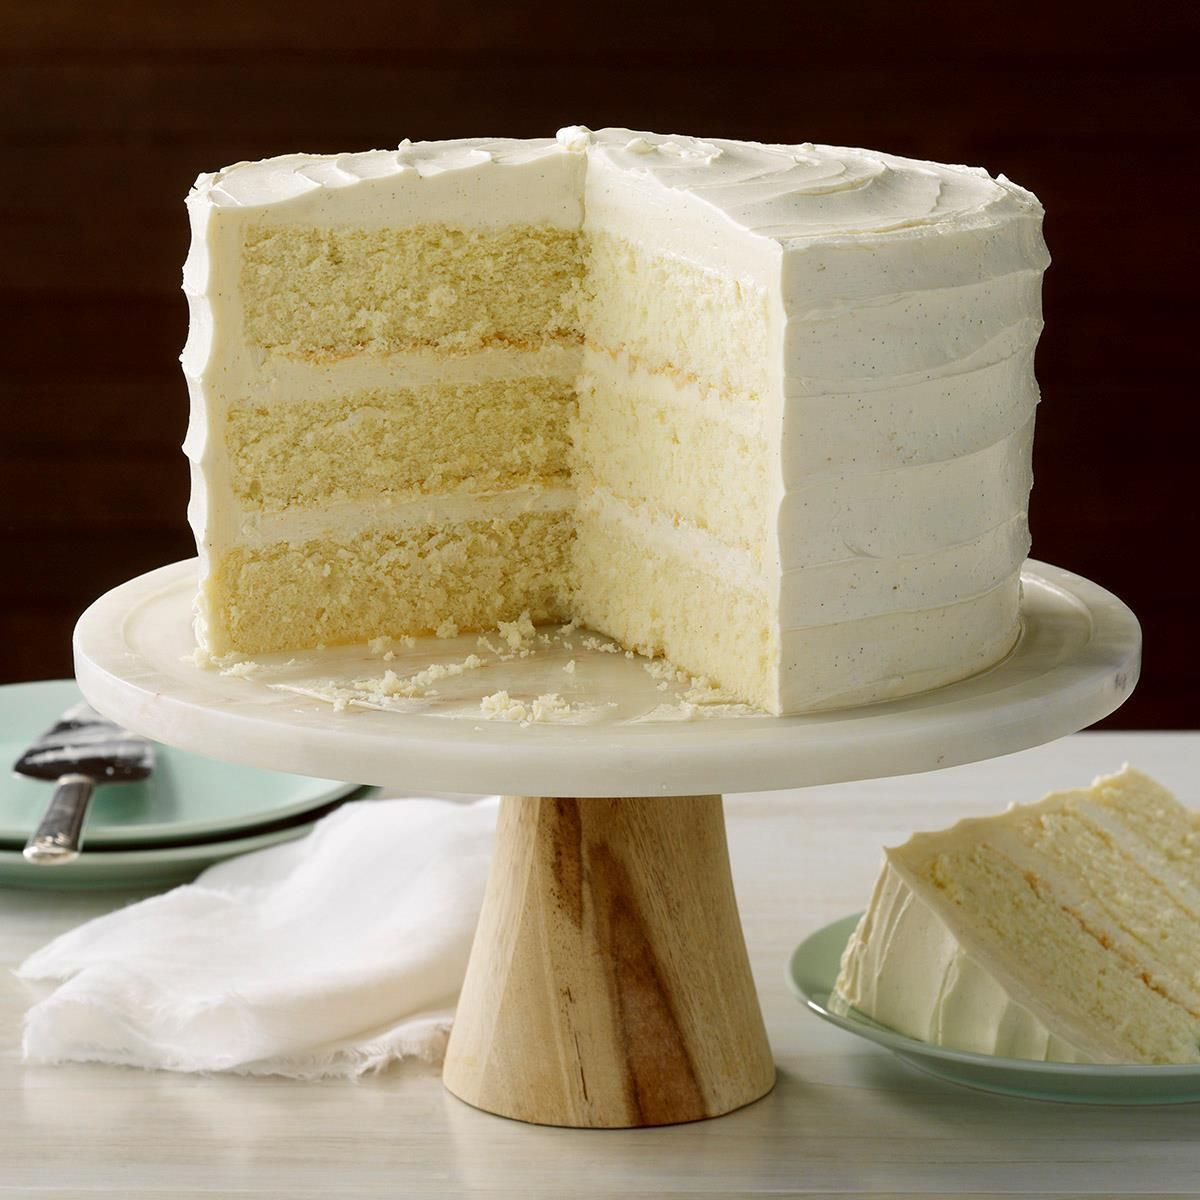 Best Vanilla Cake Recipe Taste Of Home In 2020 Best Vanilla Cake Recipe Vanilla Cake Cake